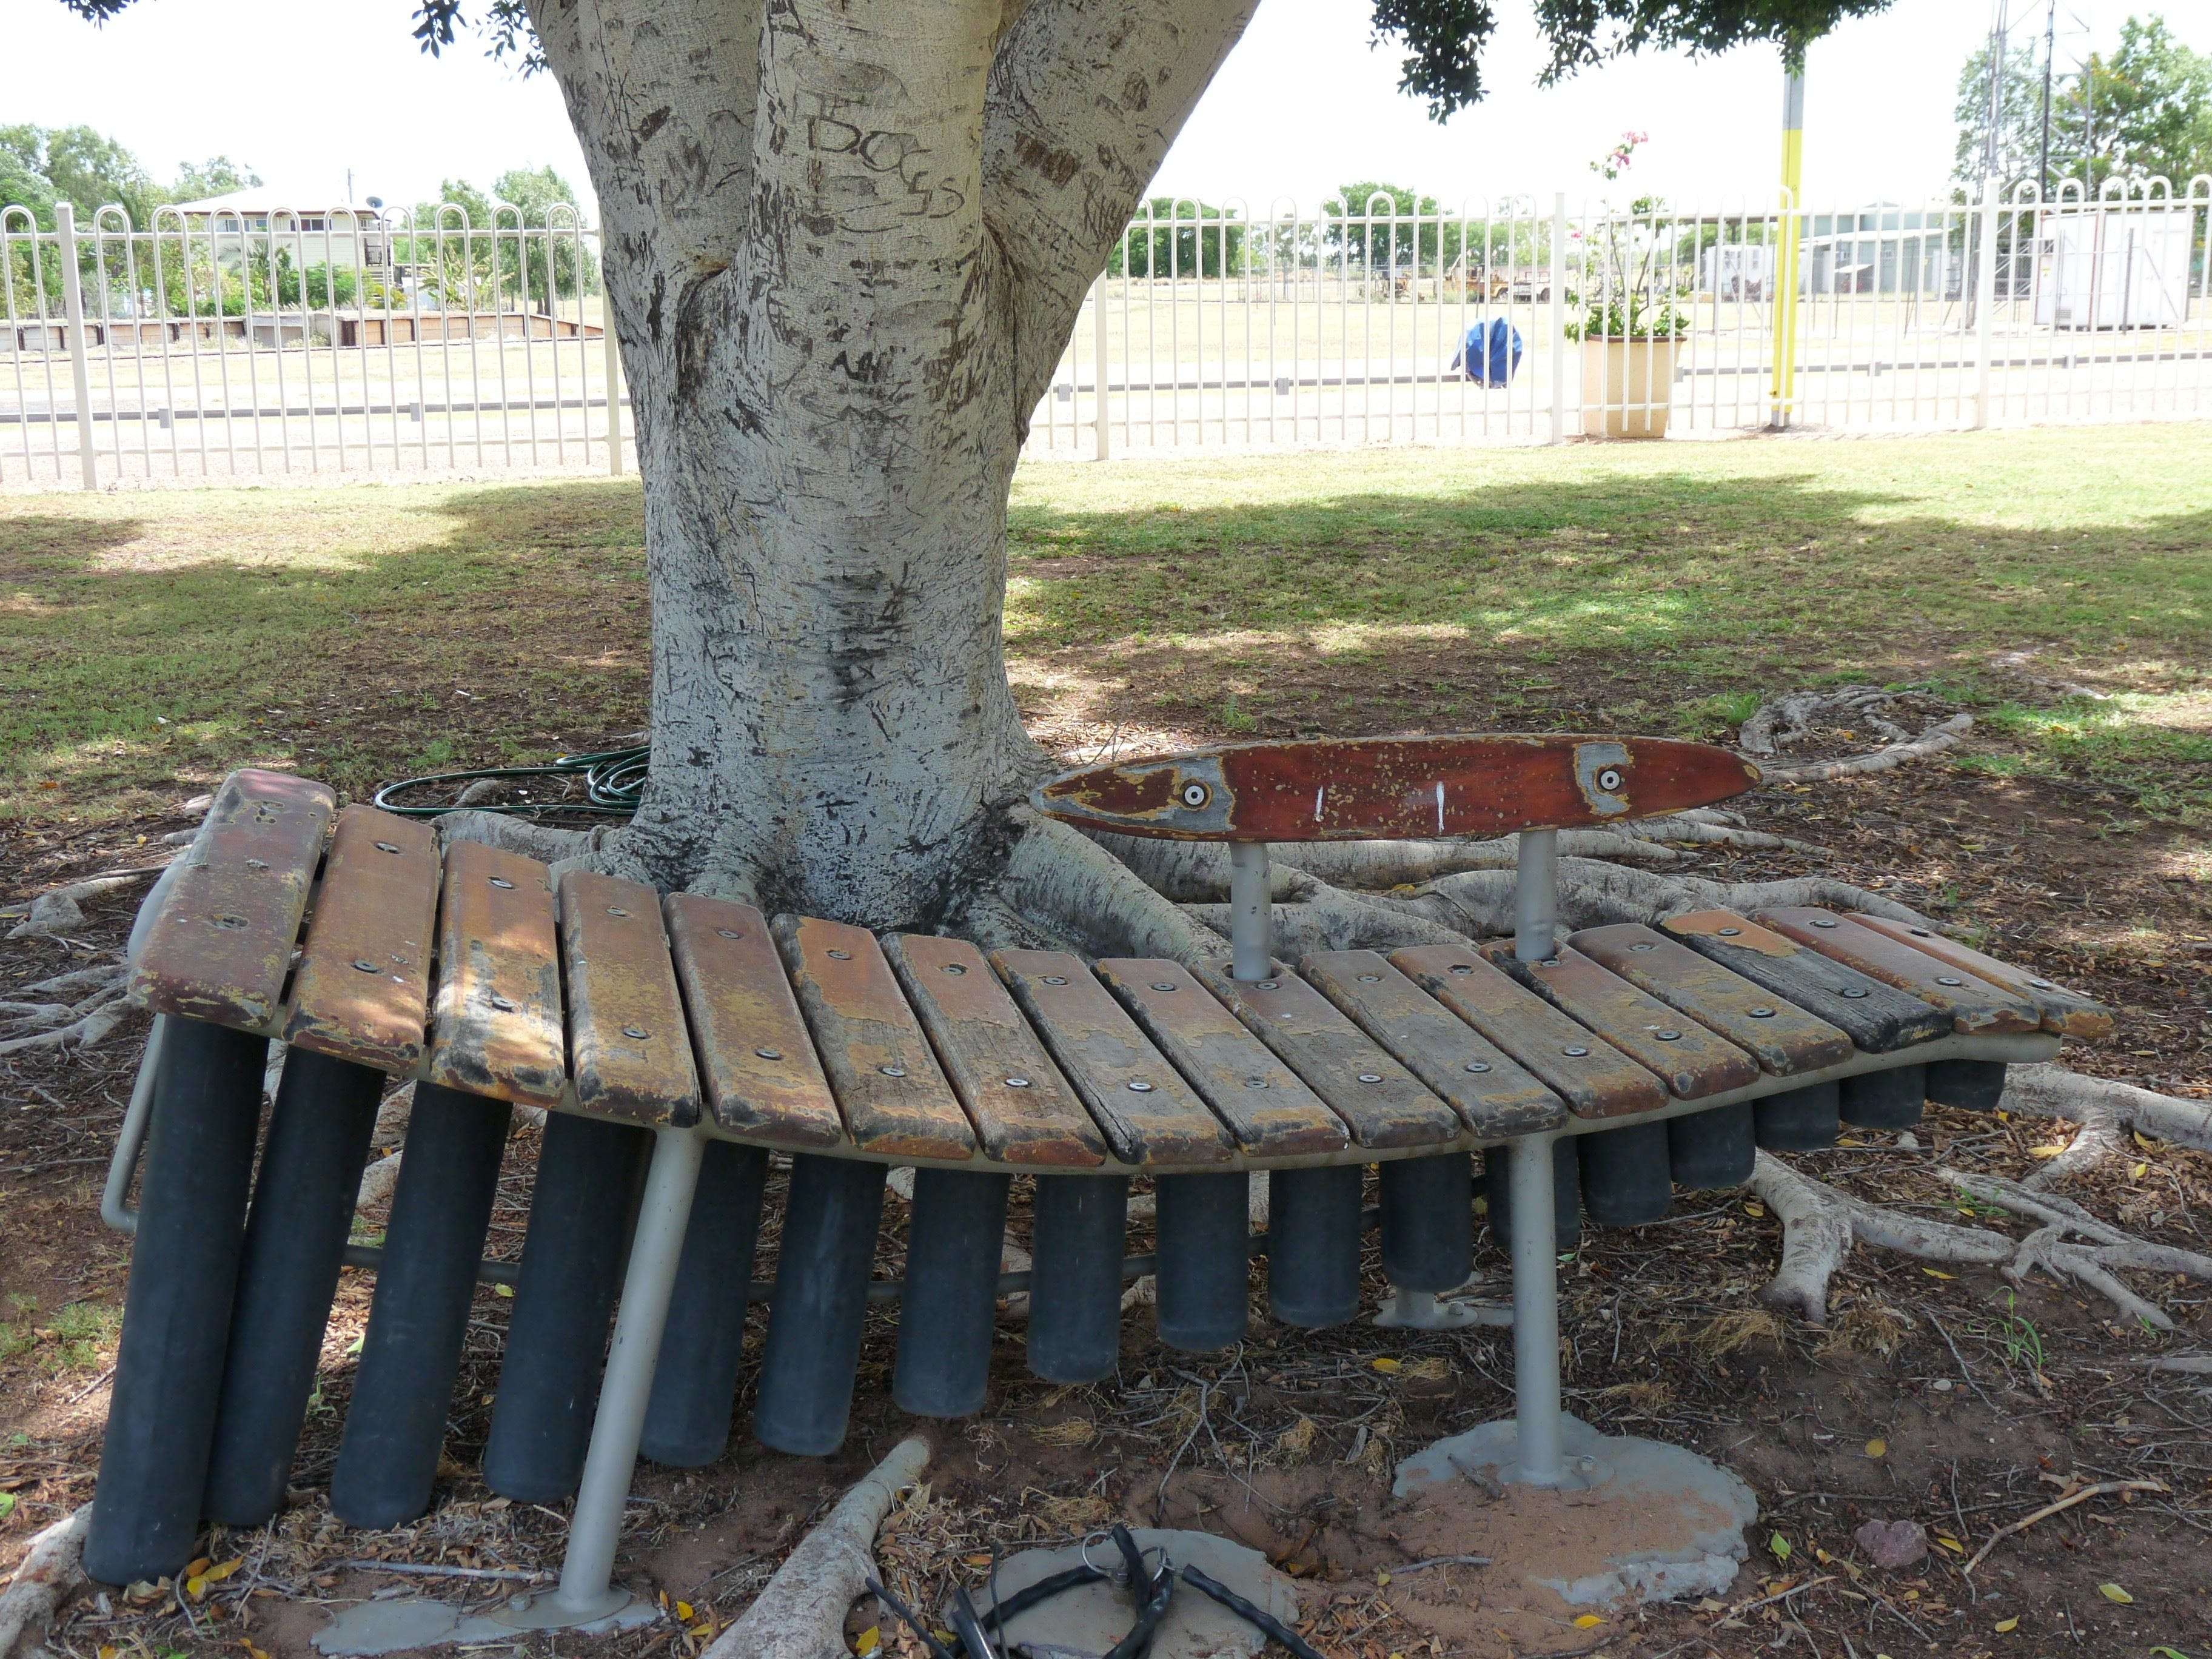 Barcaldine Musical Instruments - Accommodation Search